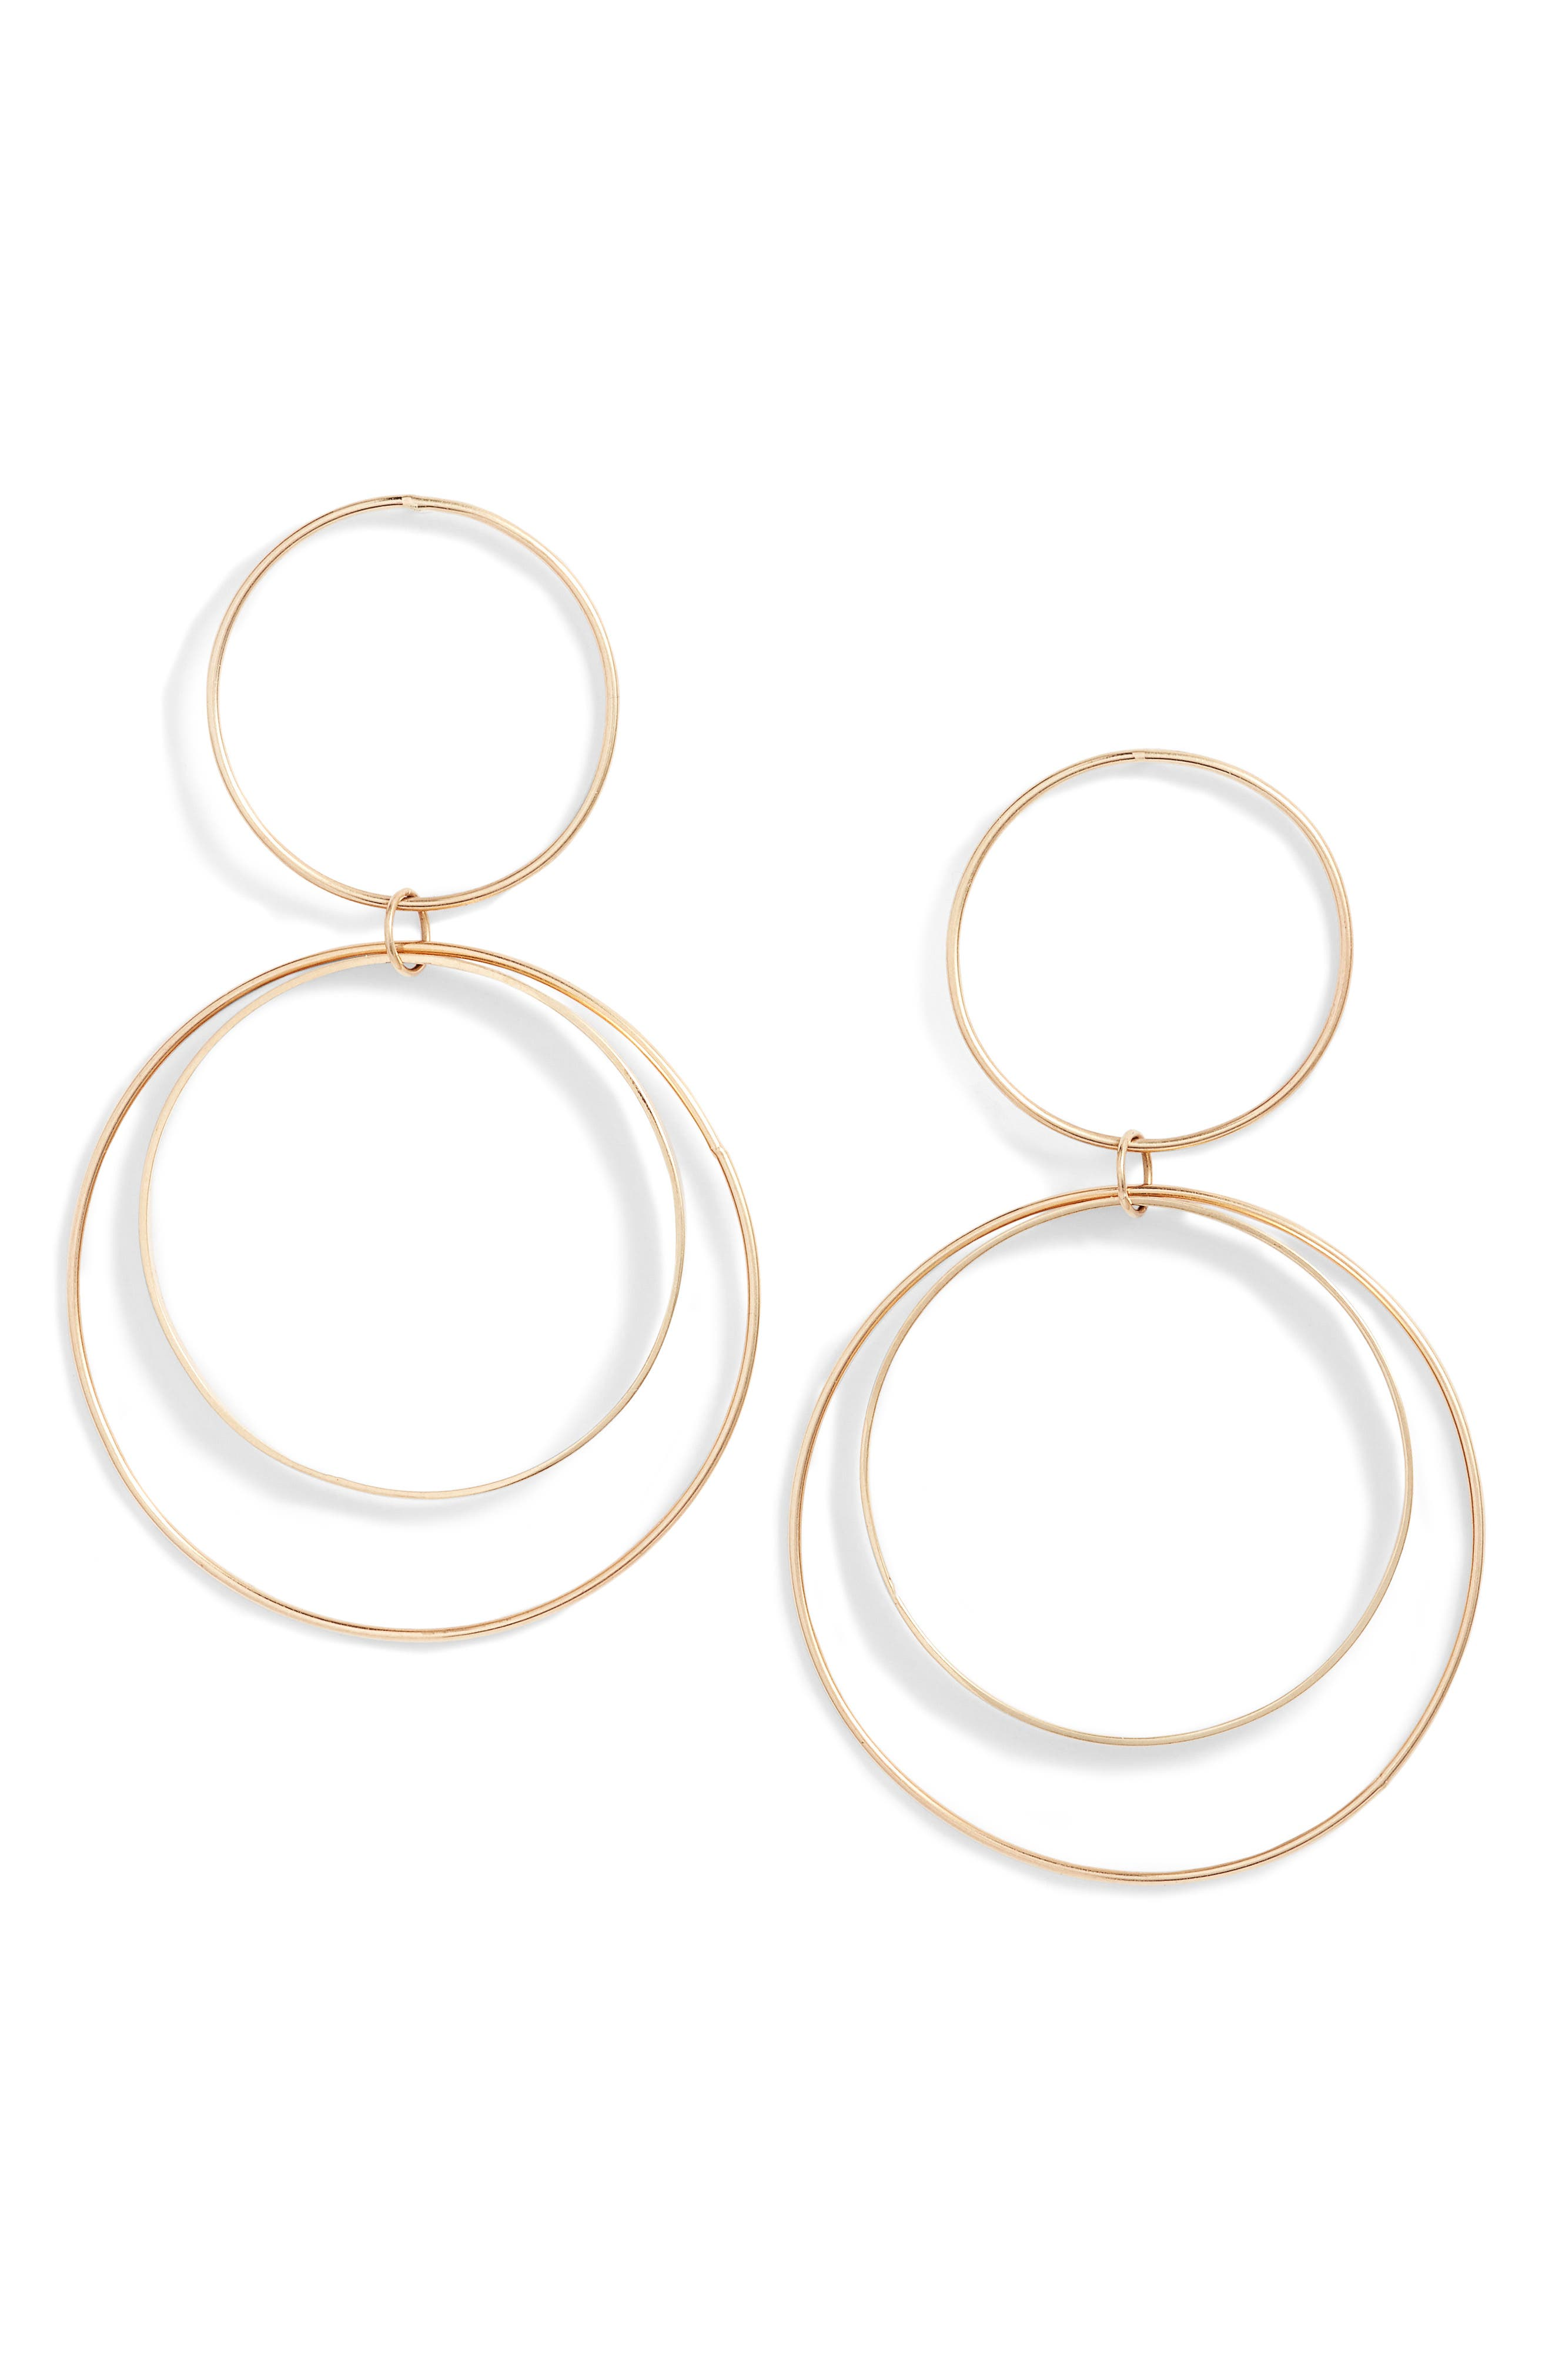 Lana Jewelry Two Tier Circle Drop Earrings